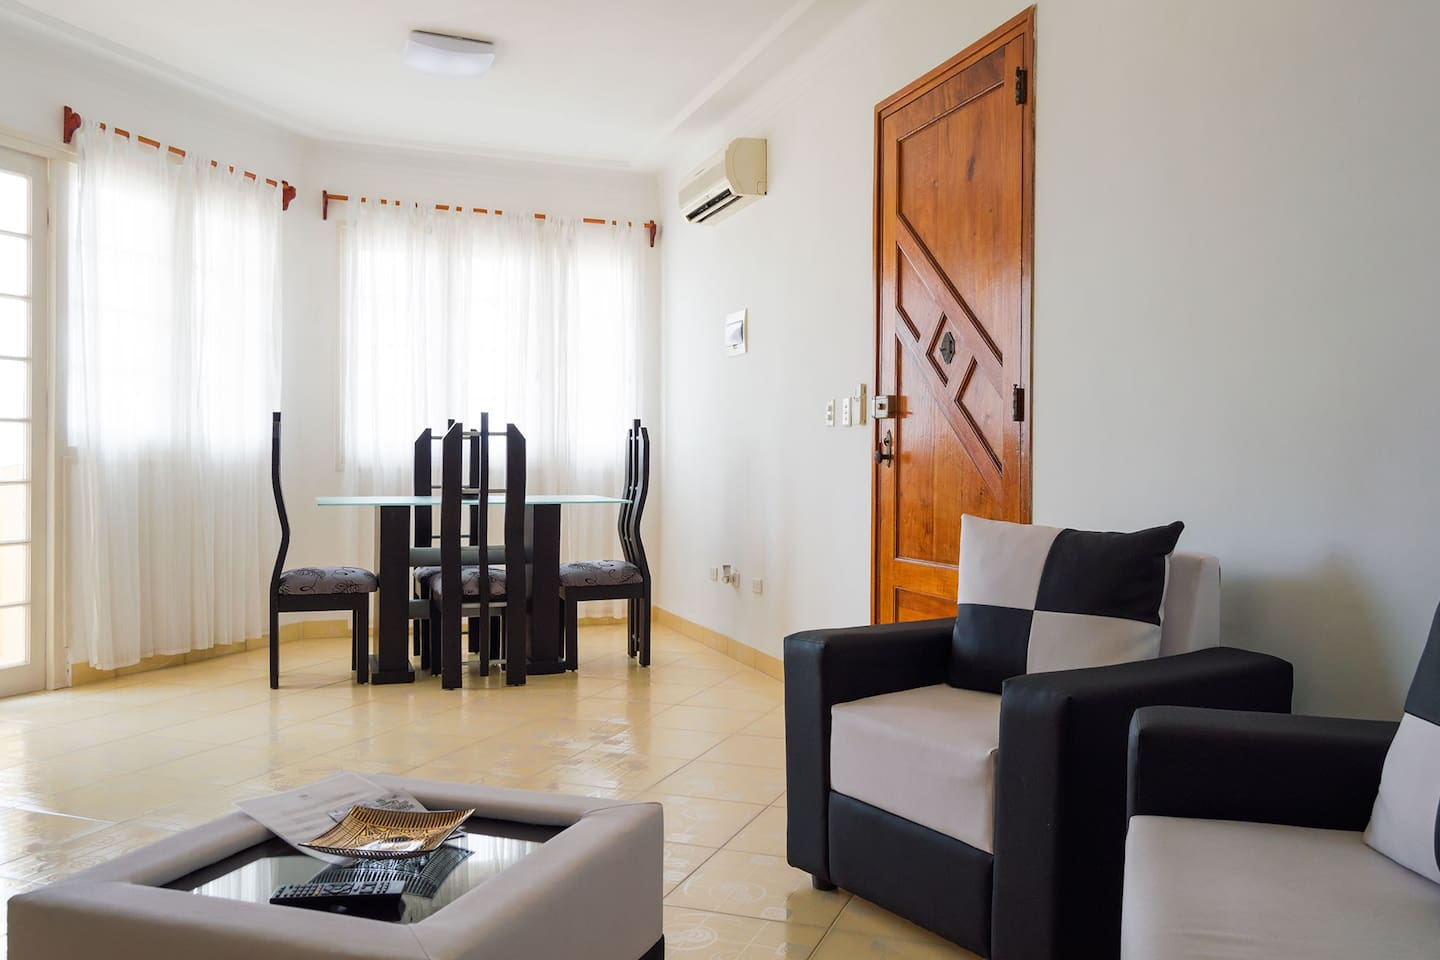 Living room and dinning room: air conditioned, very spacious and illuminated